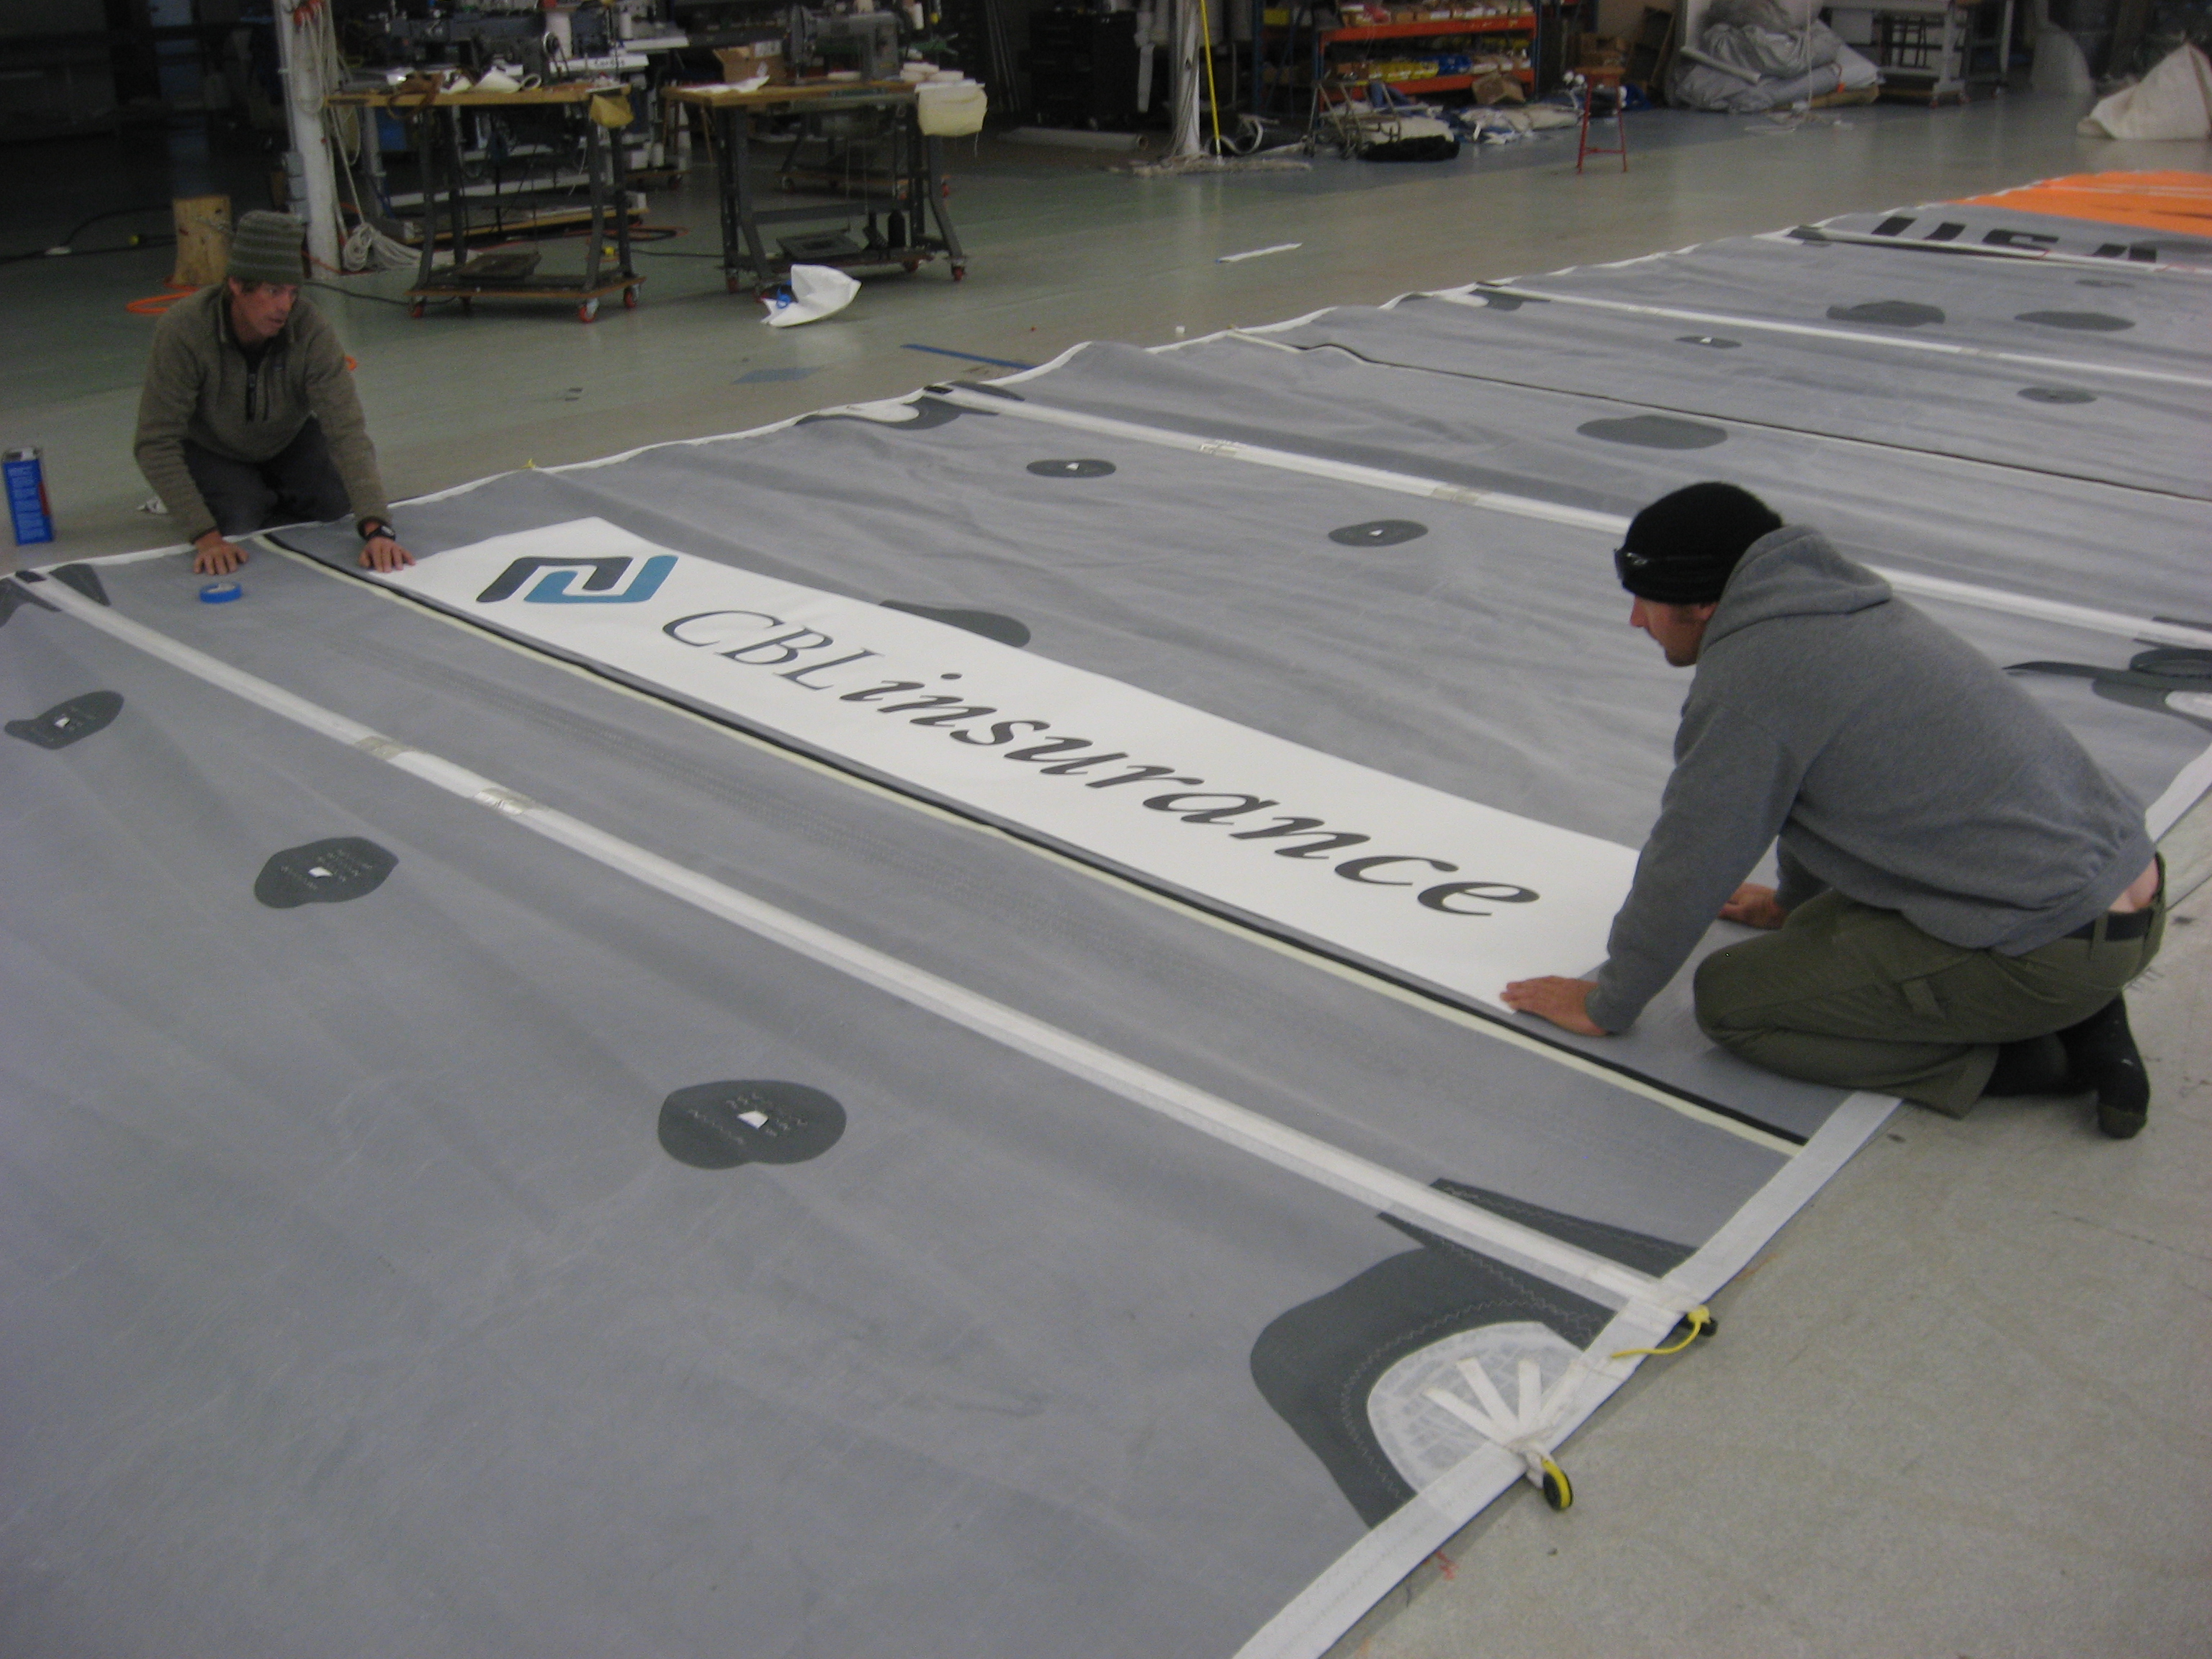 CBLK insurance NZL logo going onto Joe Harris's mainsail